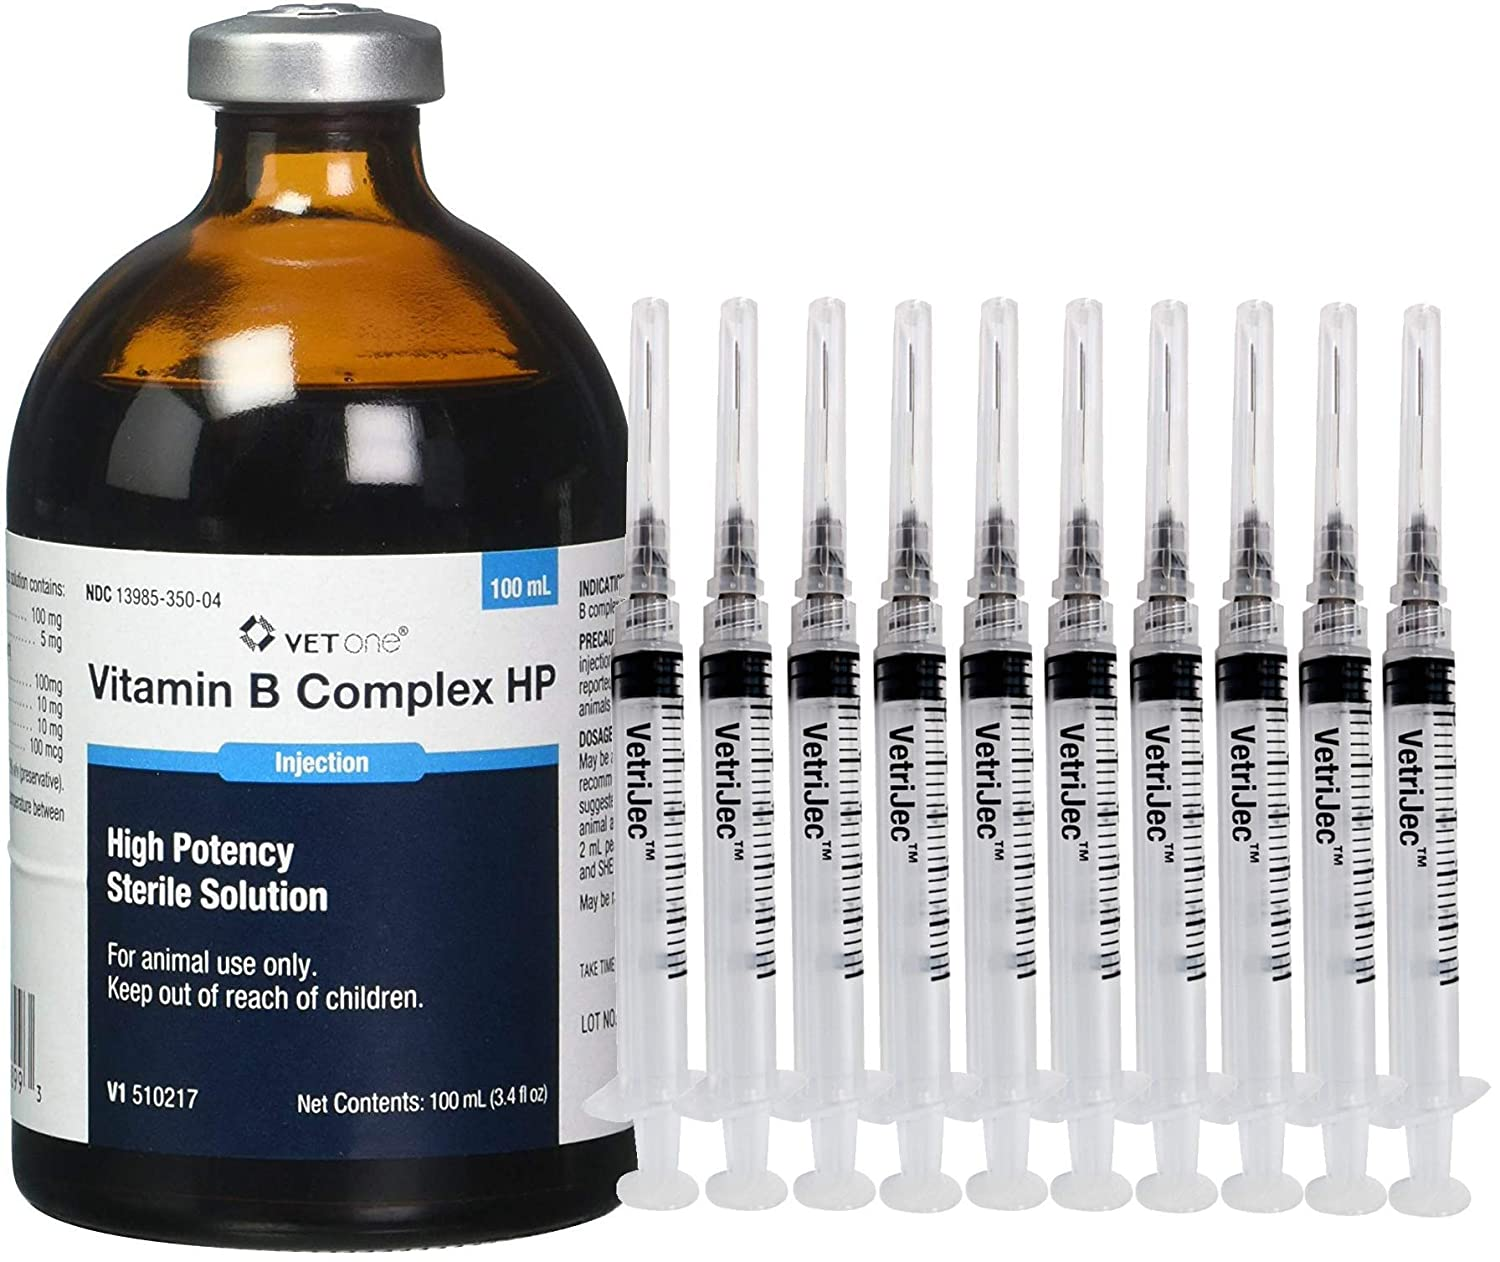 "Vet One Vitamin B Complex High Potency (Value Pack) for Goats, Cattle, Swine, Sheep & Dogs 100 mL with (10) 3 mL/cc Luer Lock Syringes w/ 22g x 1.0"" Needle & Caps - Supplemental Source of Vitamin B"